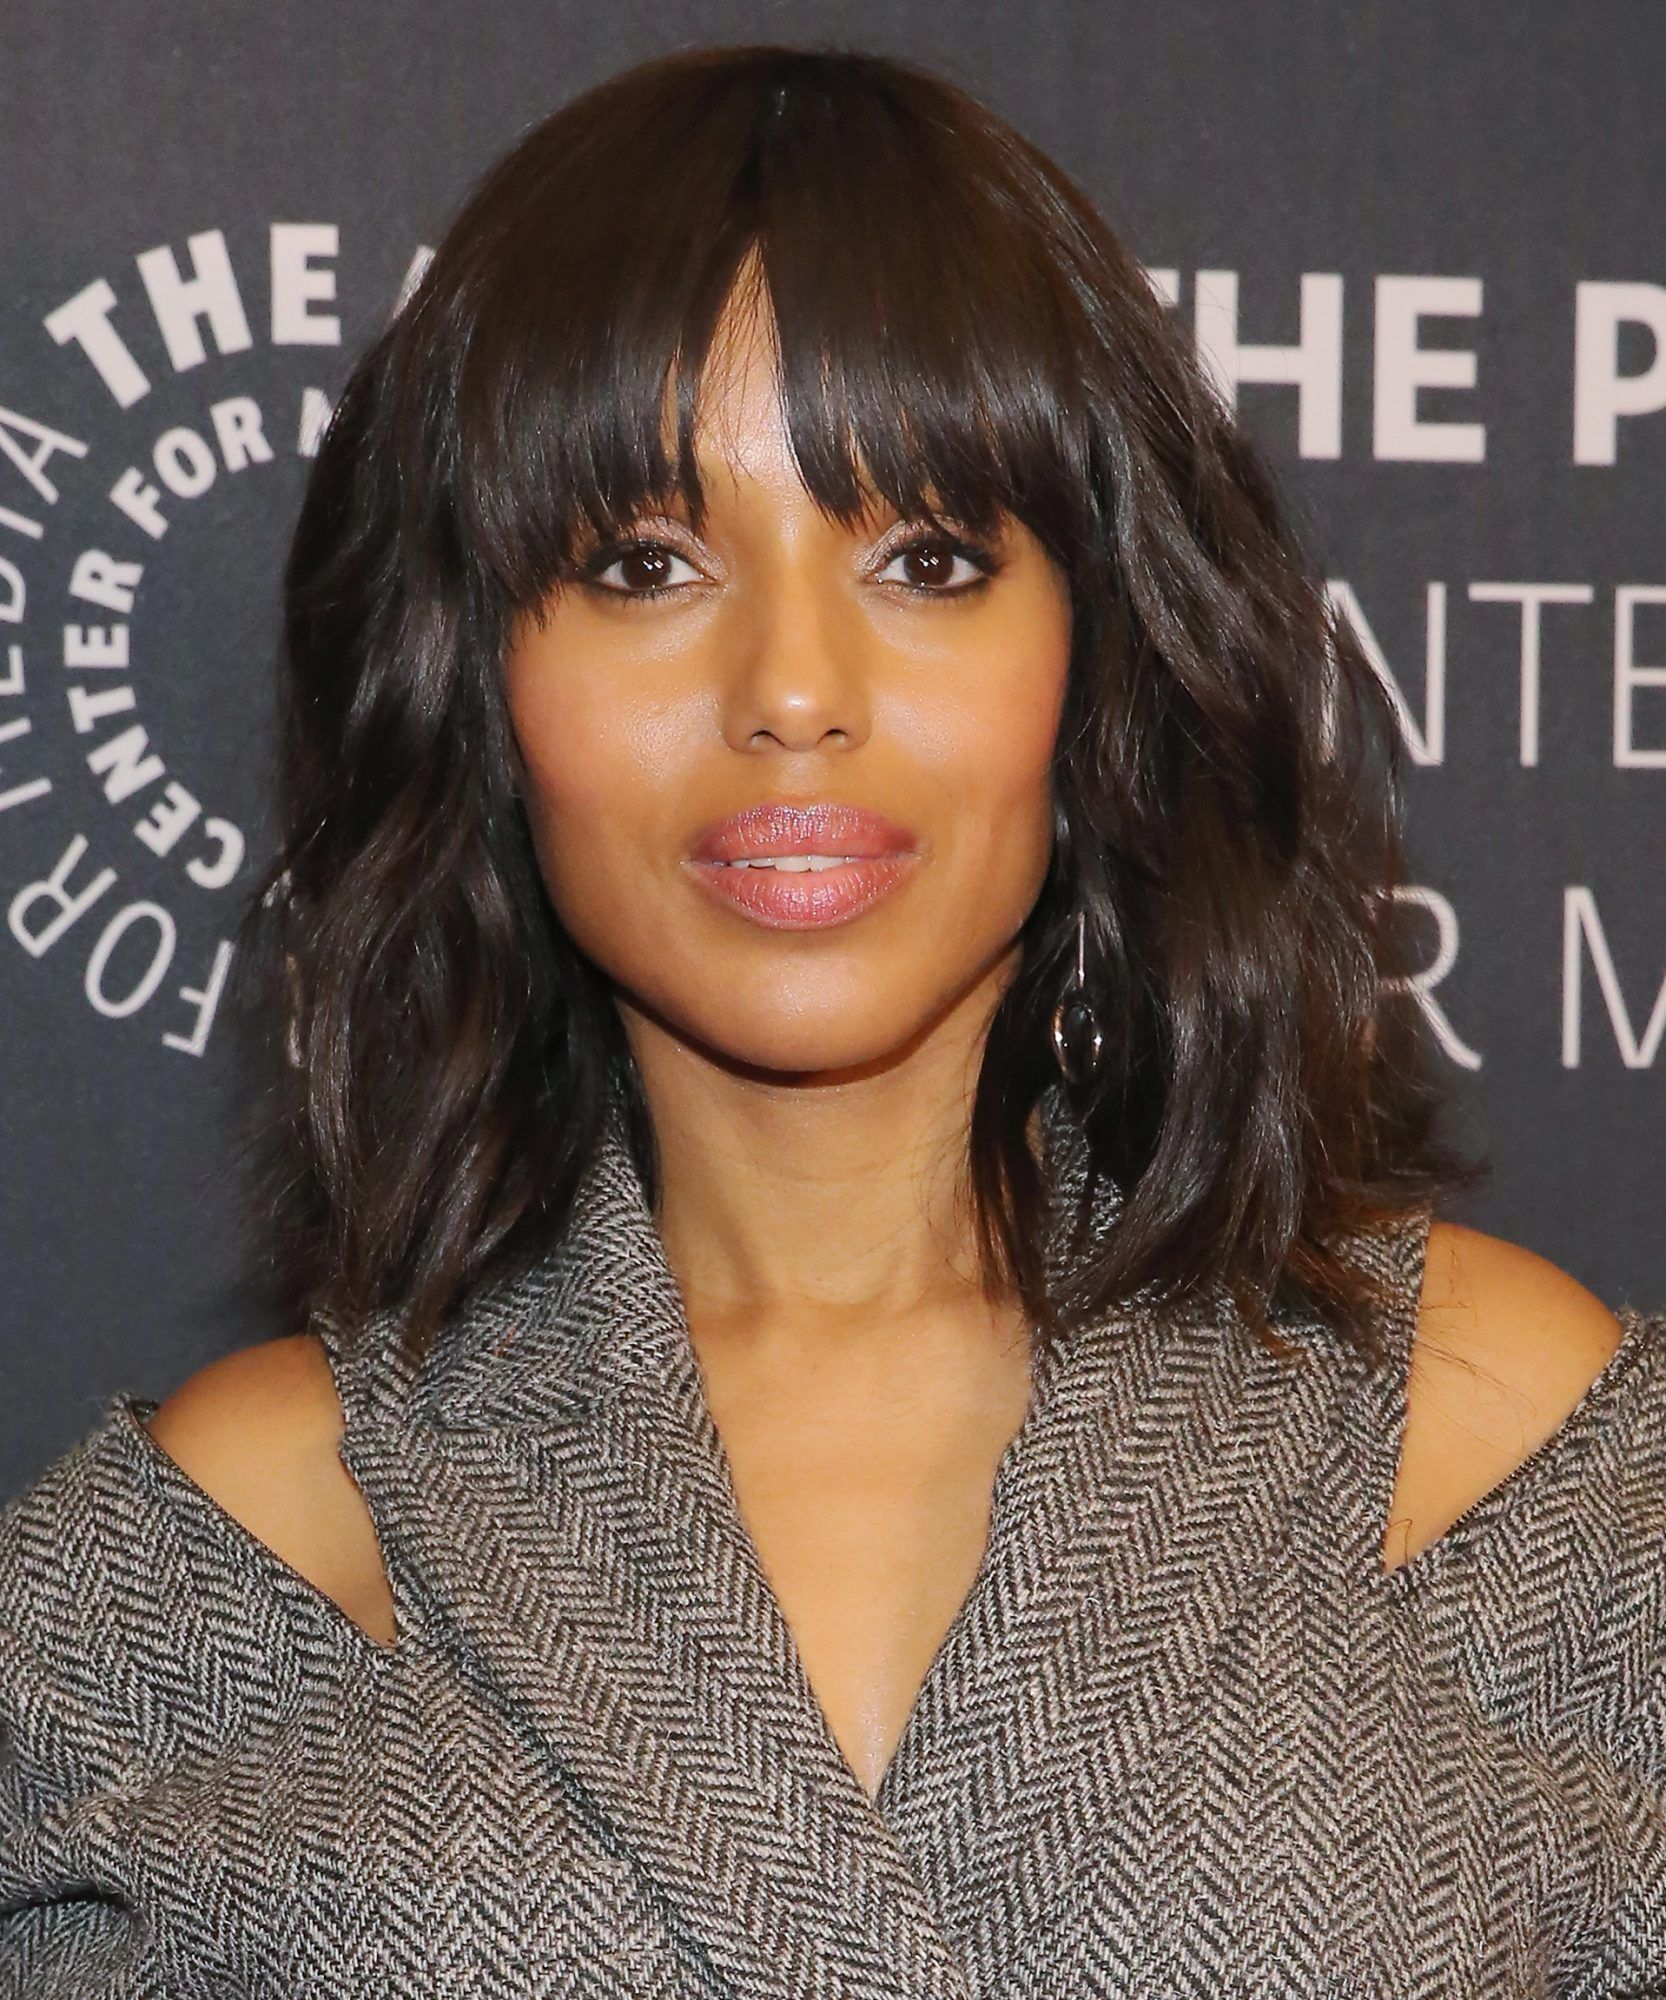 These Are The Best Bangs For Every Face Shape According To Stylists Cuando Llega Are Generally Primavera Cool Hairstyles How To Style Bangs Hair Styles